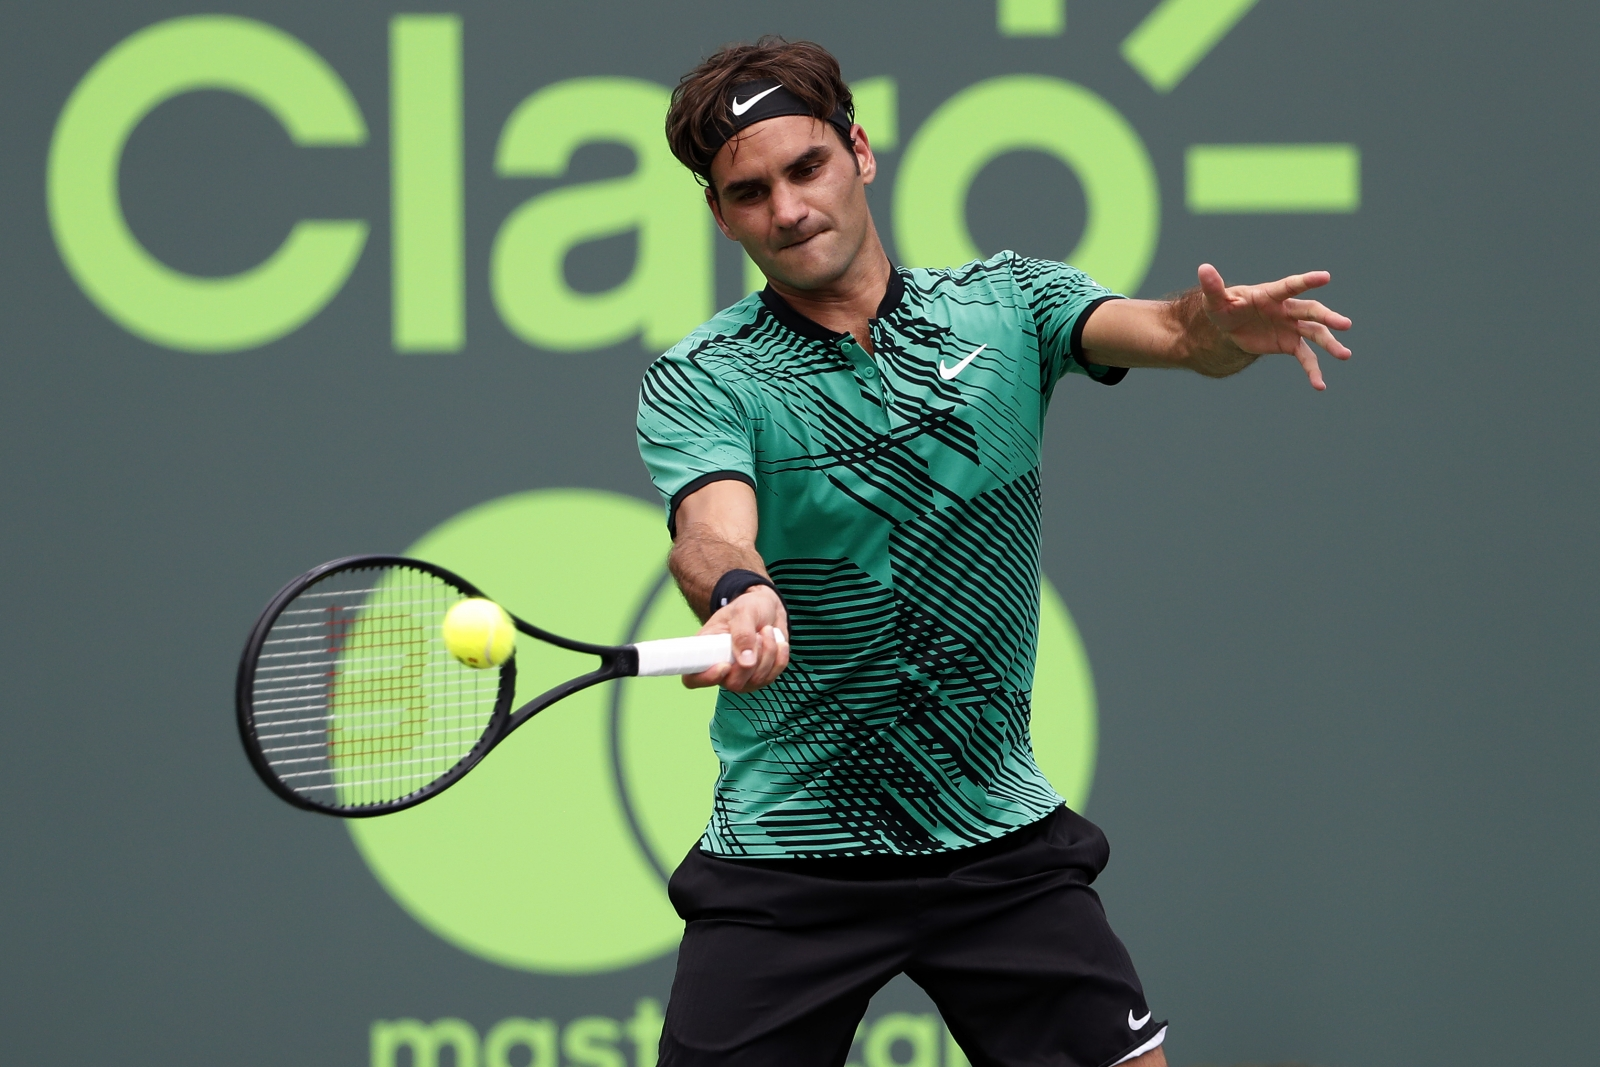 Fit Chief Clarifies Comments On Roger Federer And Reveals